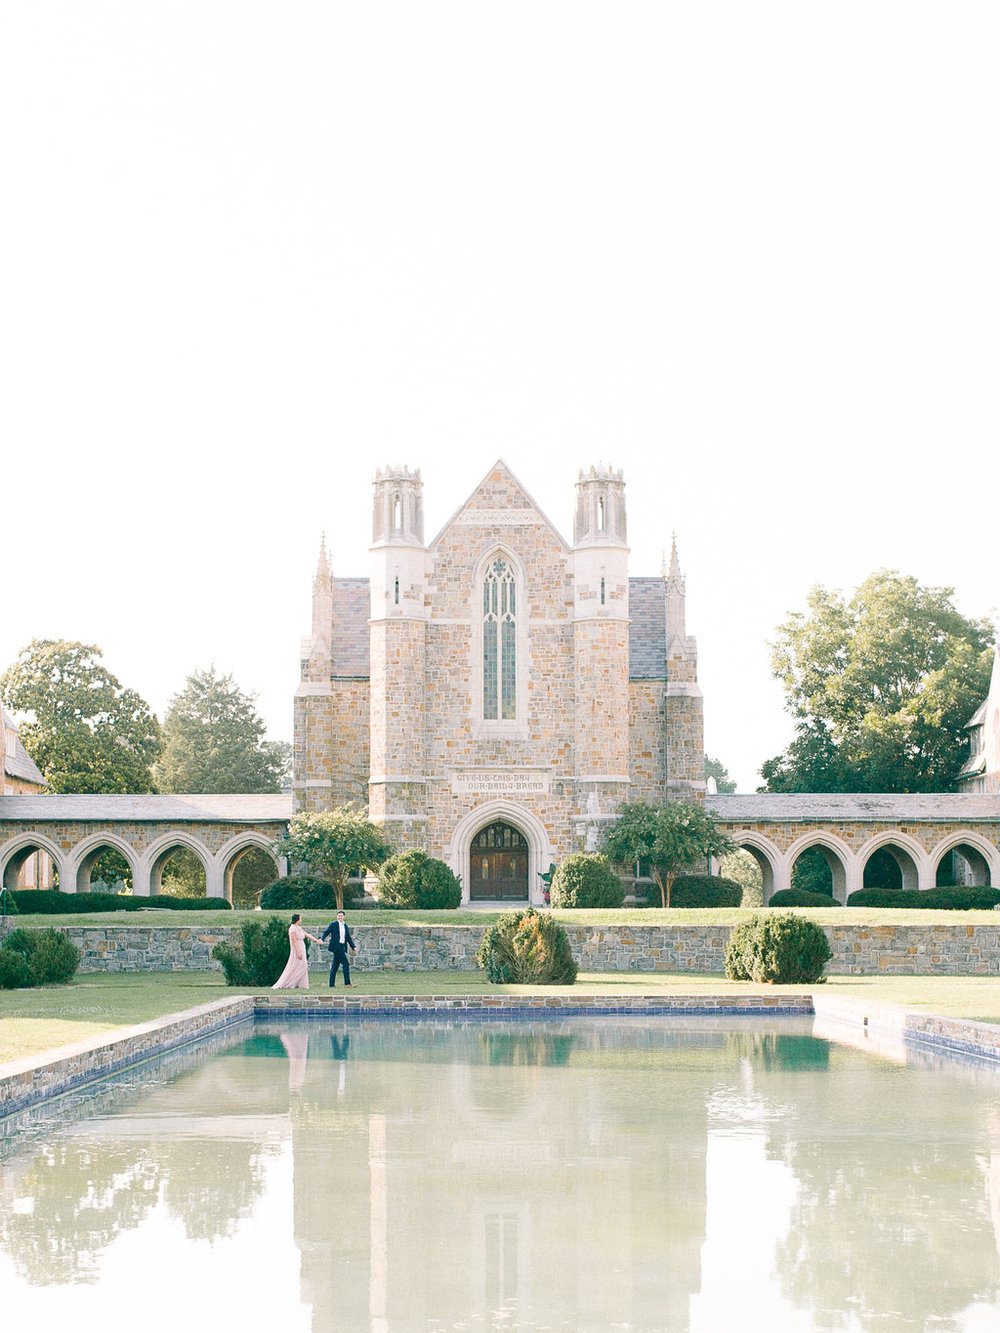 Berry-college-engagement-hannah-forsberg-atlanta-wedding-photographer-8.jpg